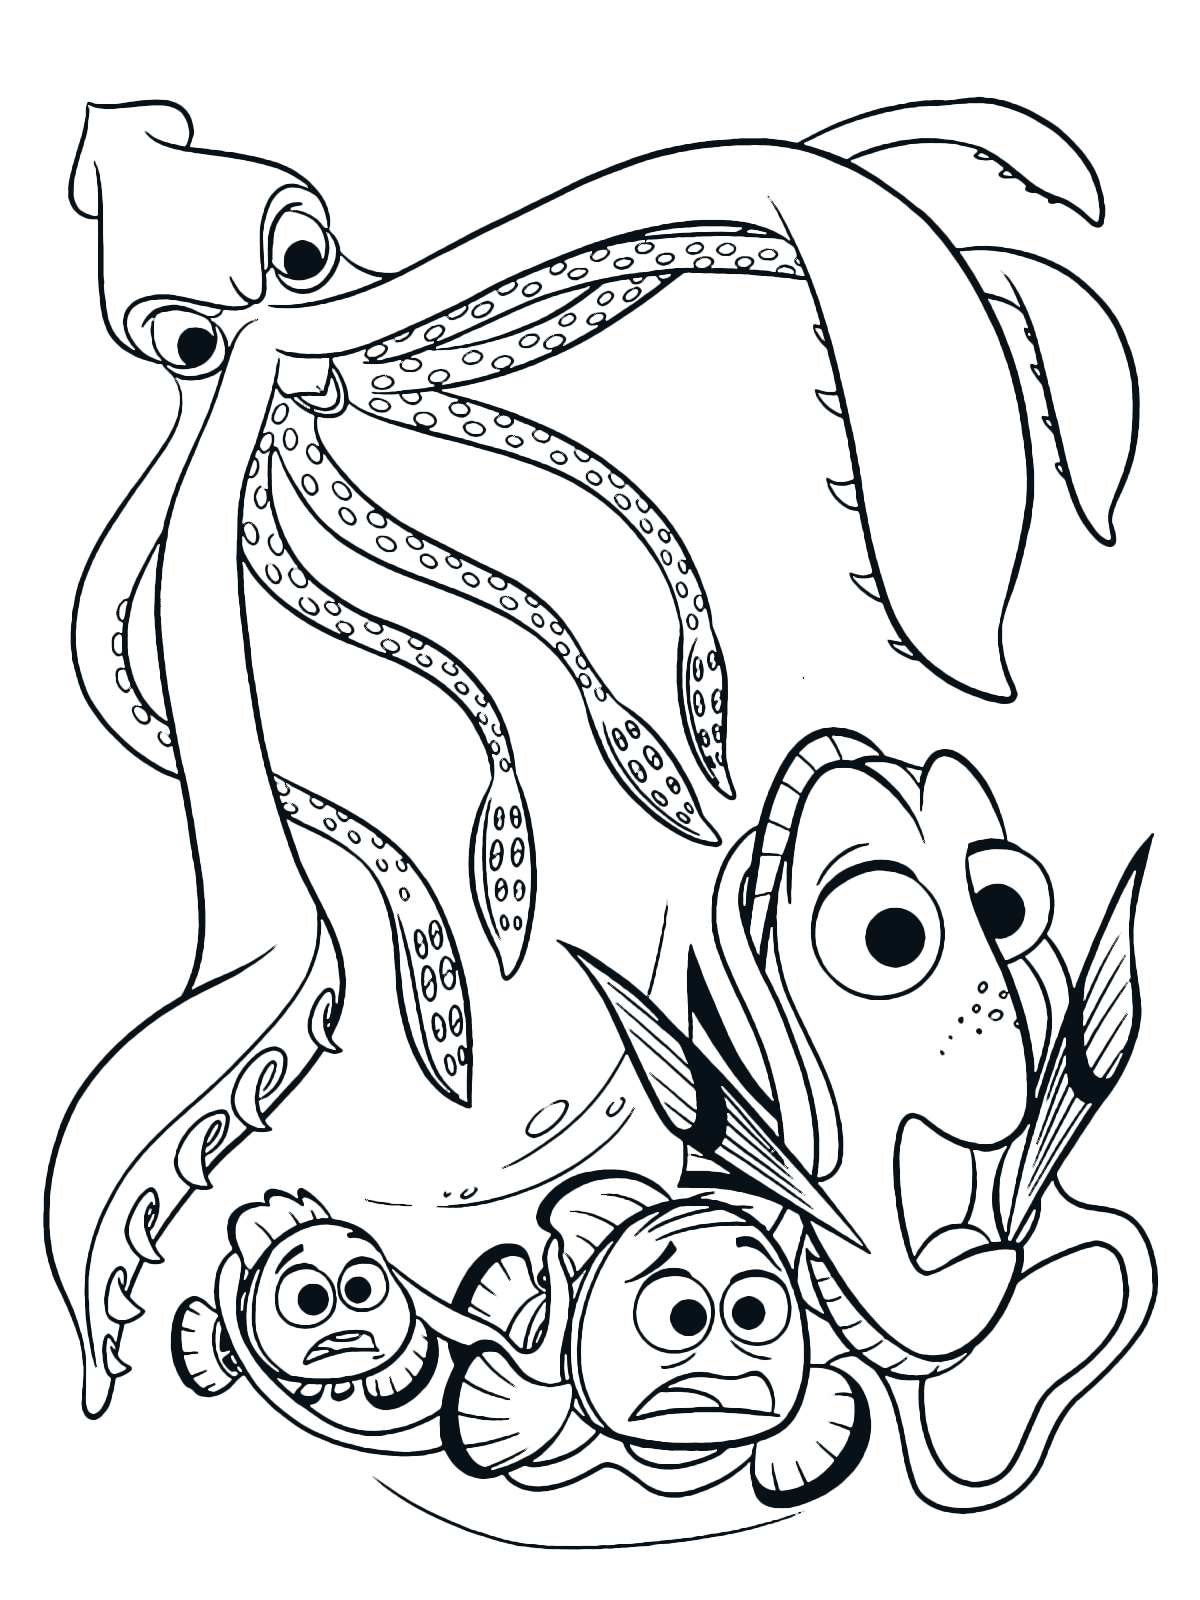 Finding Dory Coloring Page Dory Marlin And Nemo Are Nemo Coloring Pages Finding Nemo Coloring Pages Cartoon Coloring Pages